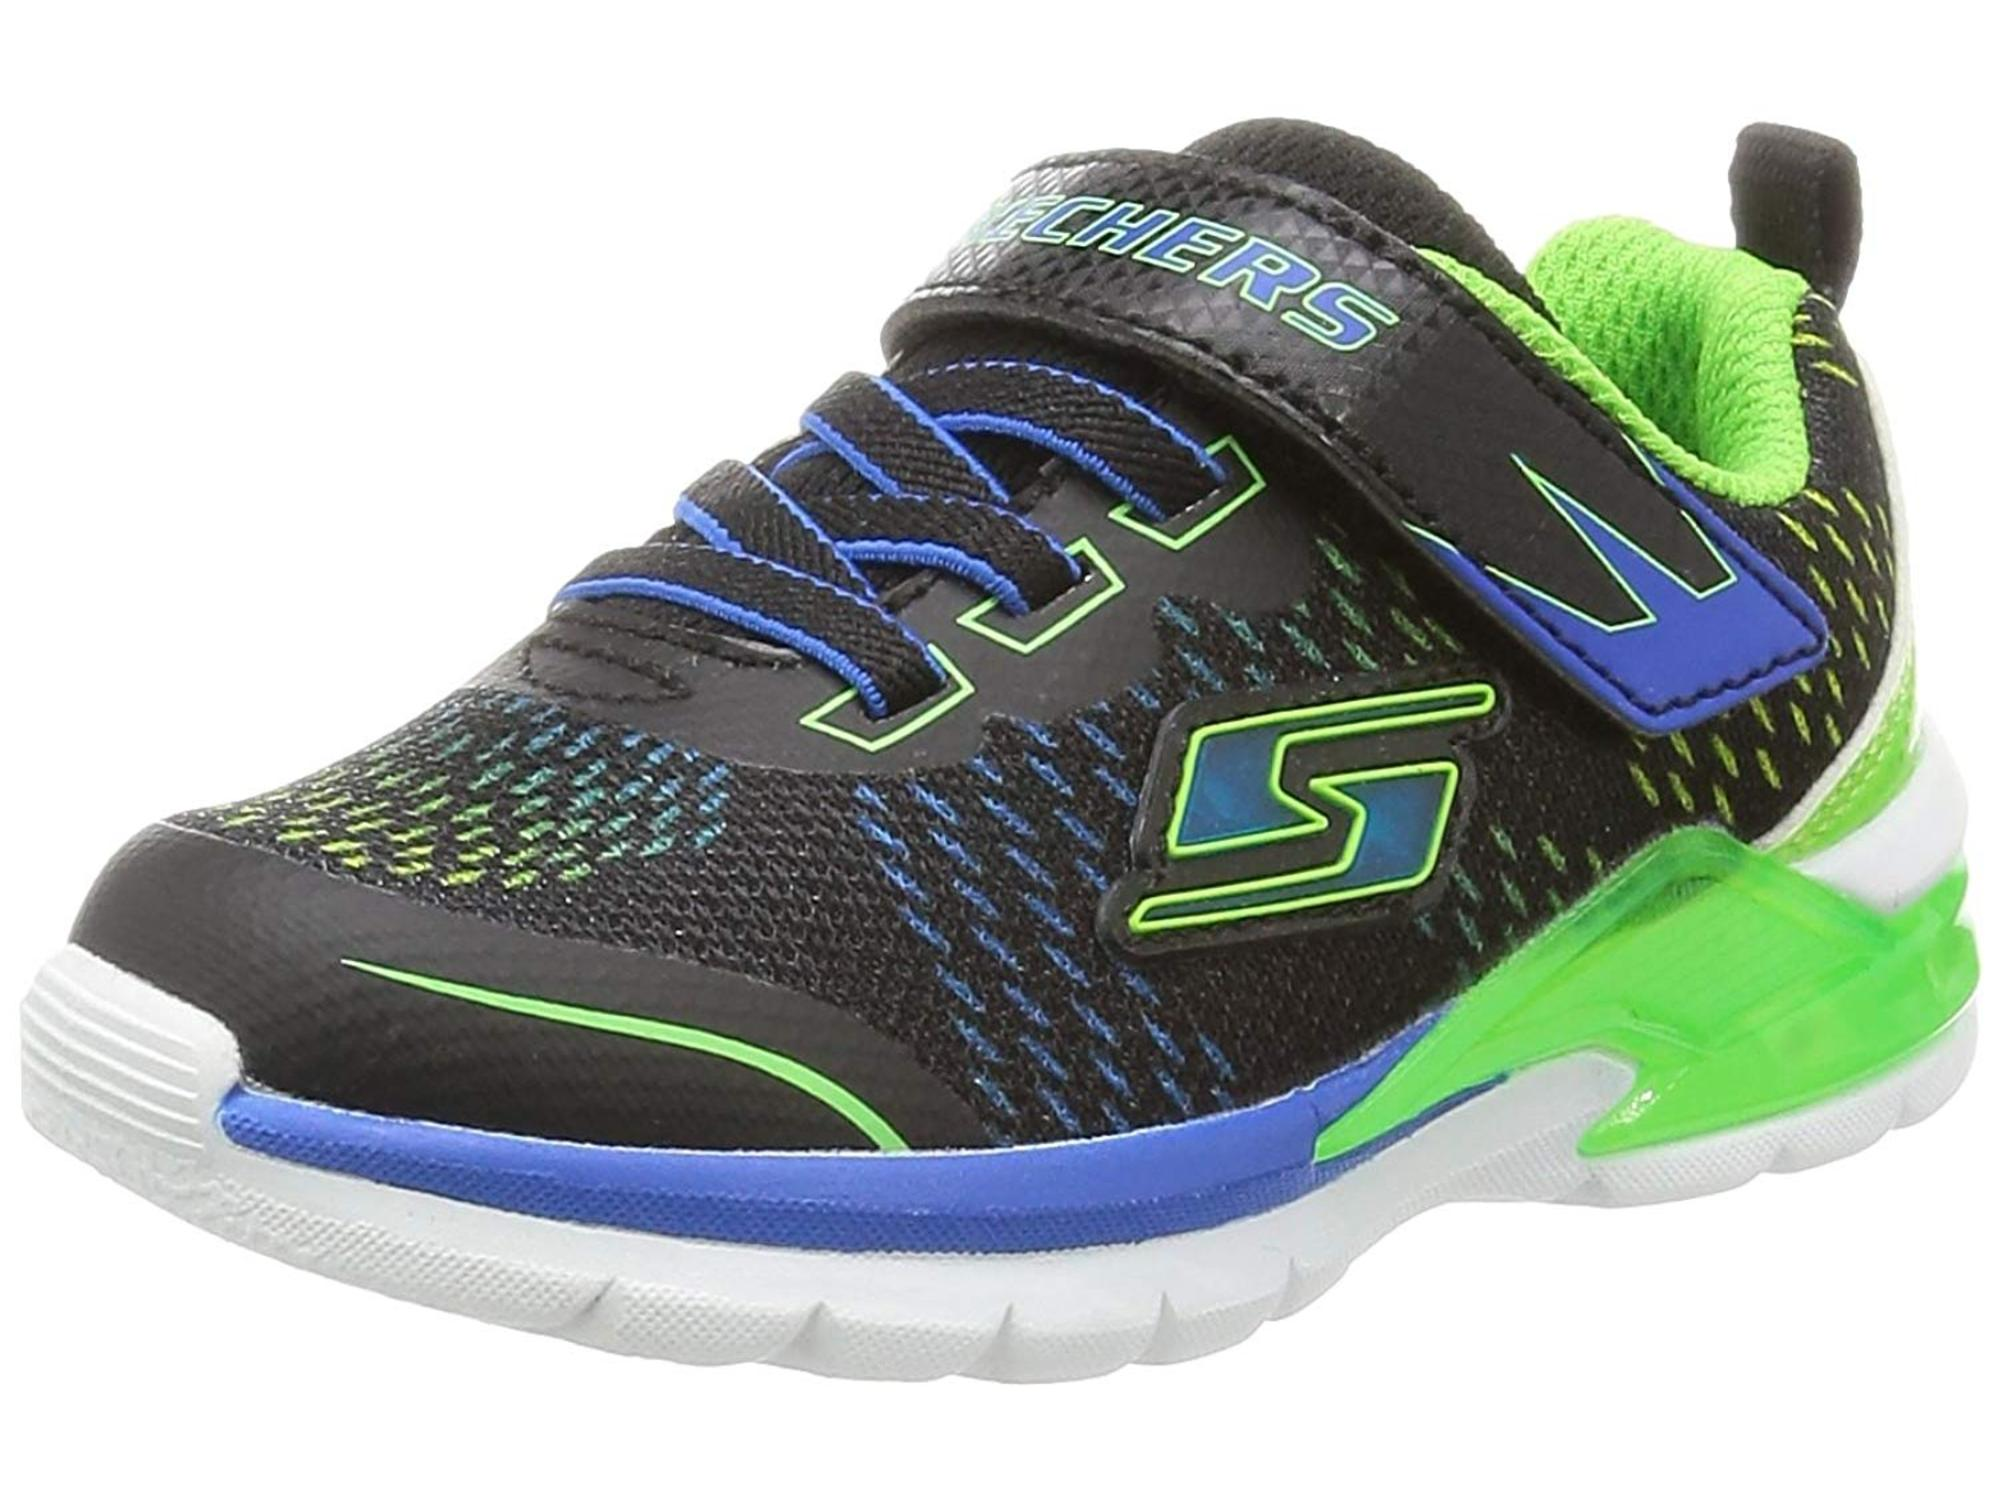 quality design 2fb11 ce51b Sneakers   Running Shoes   Walmart Canada